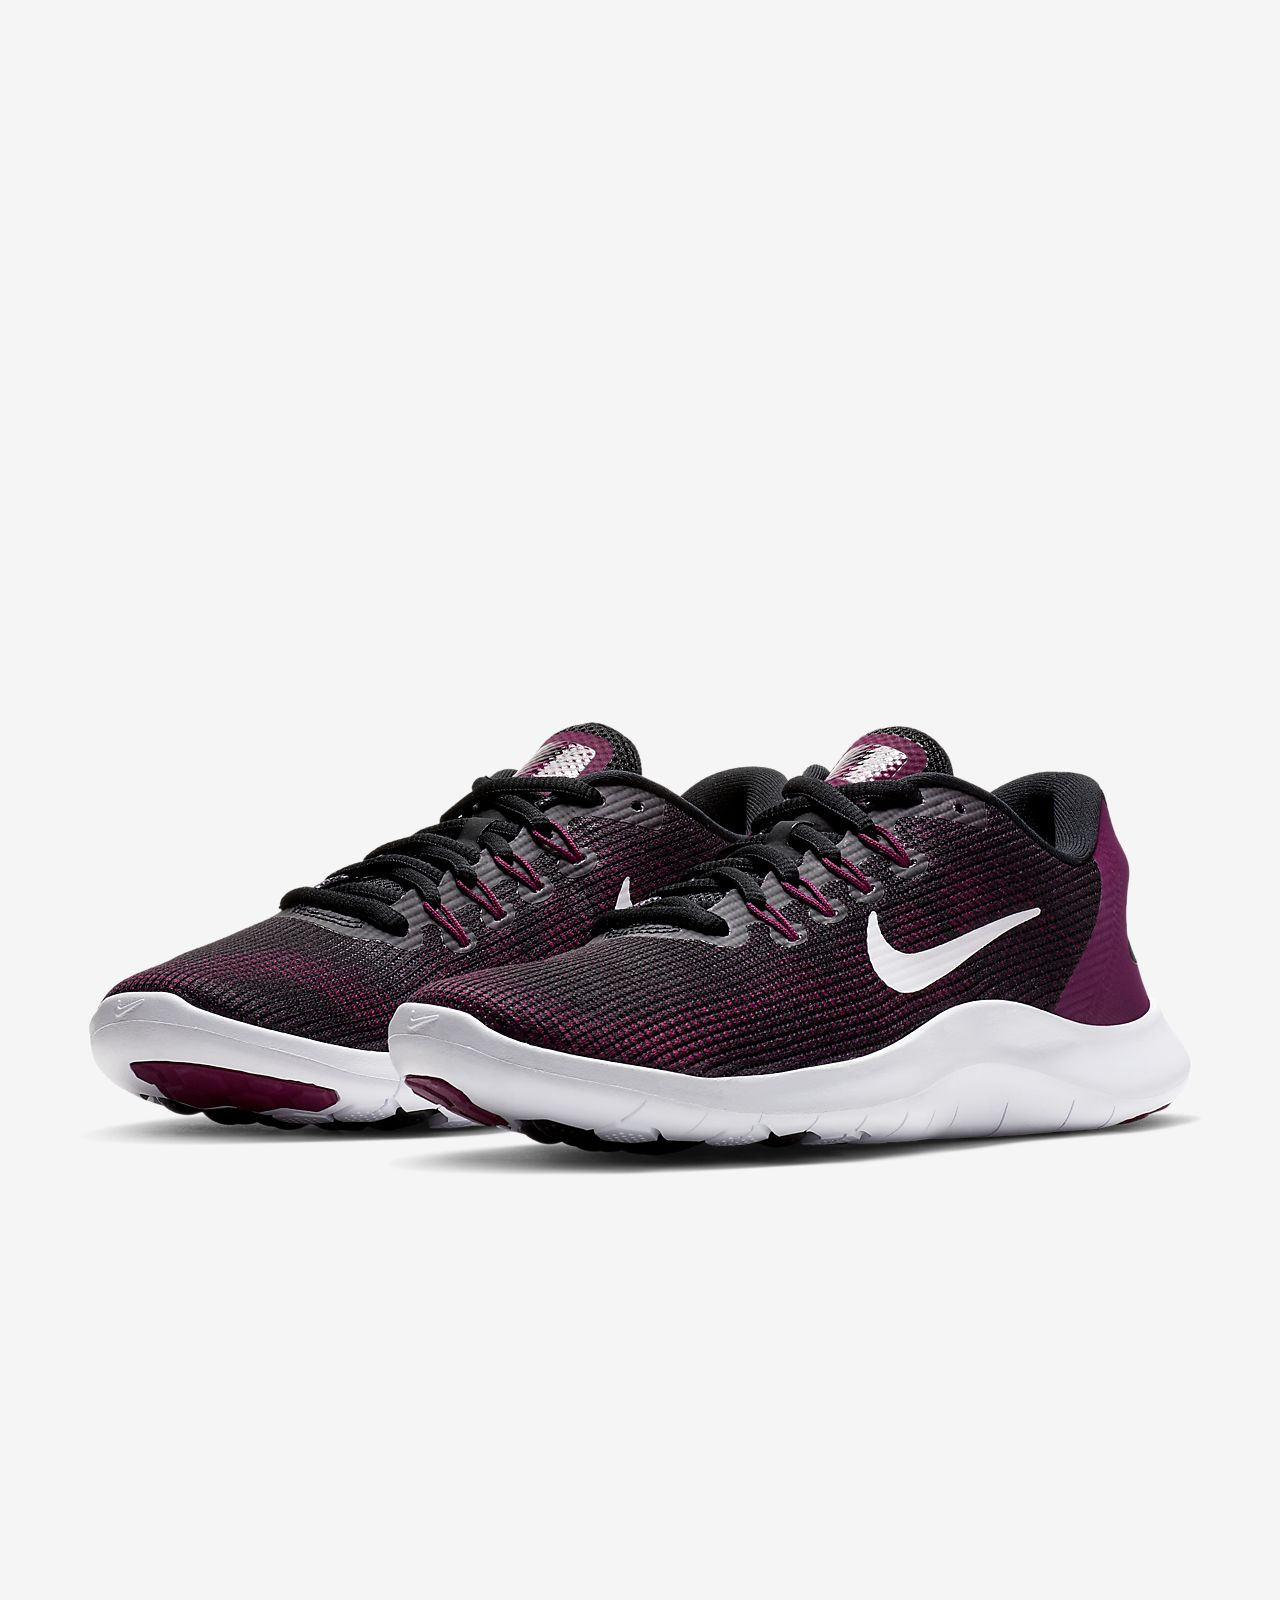 info for 8358b 66ef2 Nike Flex RN 2018 Women's Running Shoe. Nike.com